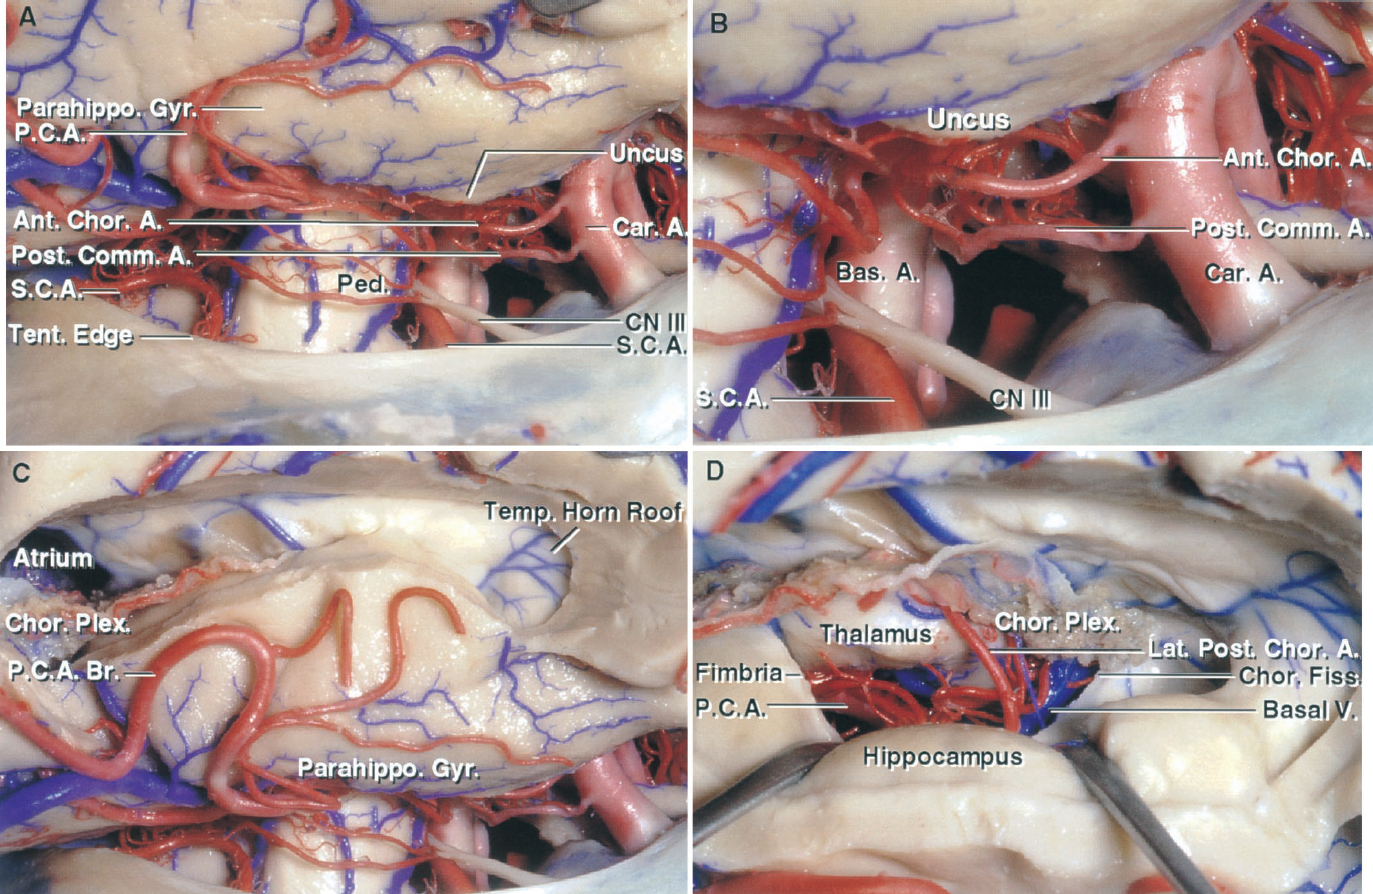 FIGURE 5.7. A–D. Anterior and middle incisural space. A, the right temporal lobe has been elevated. The middle incisural space, located between the lateral surface of the midbrain and the tentorial edge, opens upward into the ambient cistern where the PCA and basal vein course. The internal carotid artery is exposed in front of the midbrain in the anterior incisural space. B, enlarged view of the junction of the anterior and middle incisural space. The internal carotid artery, optic nerves, and basilar bifurcation are located in the anterior incisural space. The oculomotor nerve passes forward between the PCA and SCA. C, the inferior temporal and fusiform gyri have been removed to expose the lateral edge of the parahippocampal gyrus above the middle incisural space. The opening into the temporal horn exposes the choroid plexus attached along the choroidal fissure. The veins draining the roof of the temporal horn empty into the basal vein. D, the choroidal fissure has been opened by detaching the choroid plexus from the fimbria of the fornix. Opening the fissure exposes the upper part of the ambient cistern and the branches of the PCA and basal vein. A., artery; Ant., anterior; Bas., basilar; Br., branch; Car., carotid; Chor., choroid, choroidal; Cist., cistern; CN, cranial nerve; Comm., communicating; Coll., colliculus; Fiss., fissure; Gen., geniculate; Gyr., gyrus; Inf., inferior; Lat., lateral; Med., medial; Mes., mesencephalic; Parahippo., parahippocampal; P.C.A., posterior cerebral artery; Ped., peduncle; Plex., plexus; Post., posterior; S.C.A., superior cerebellar artery; Sup., superior; Temp., temporal; Tent., tentorial; V., vein; Vent., ventricular.